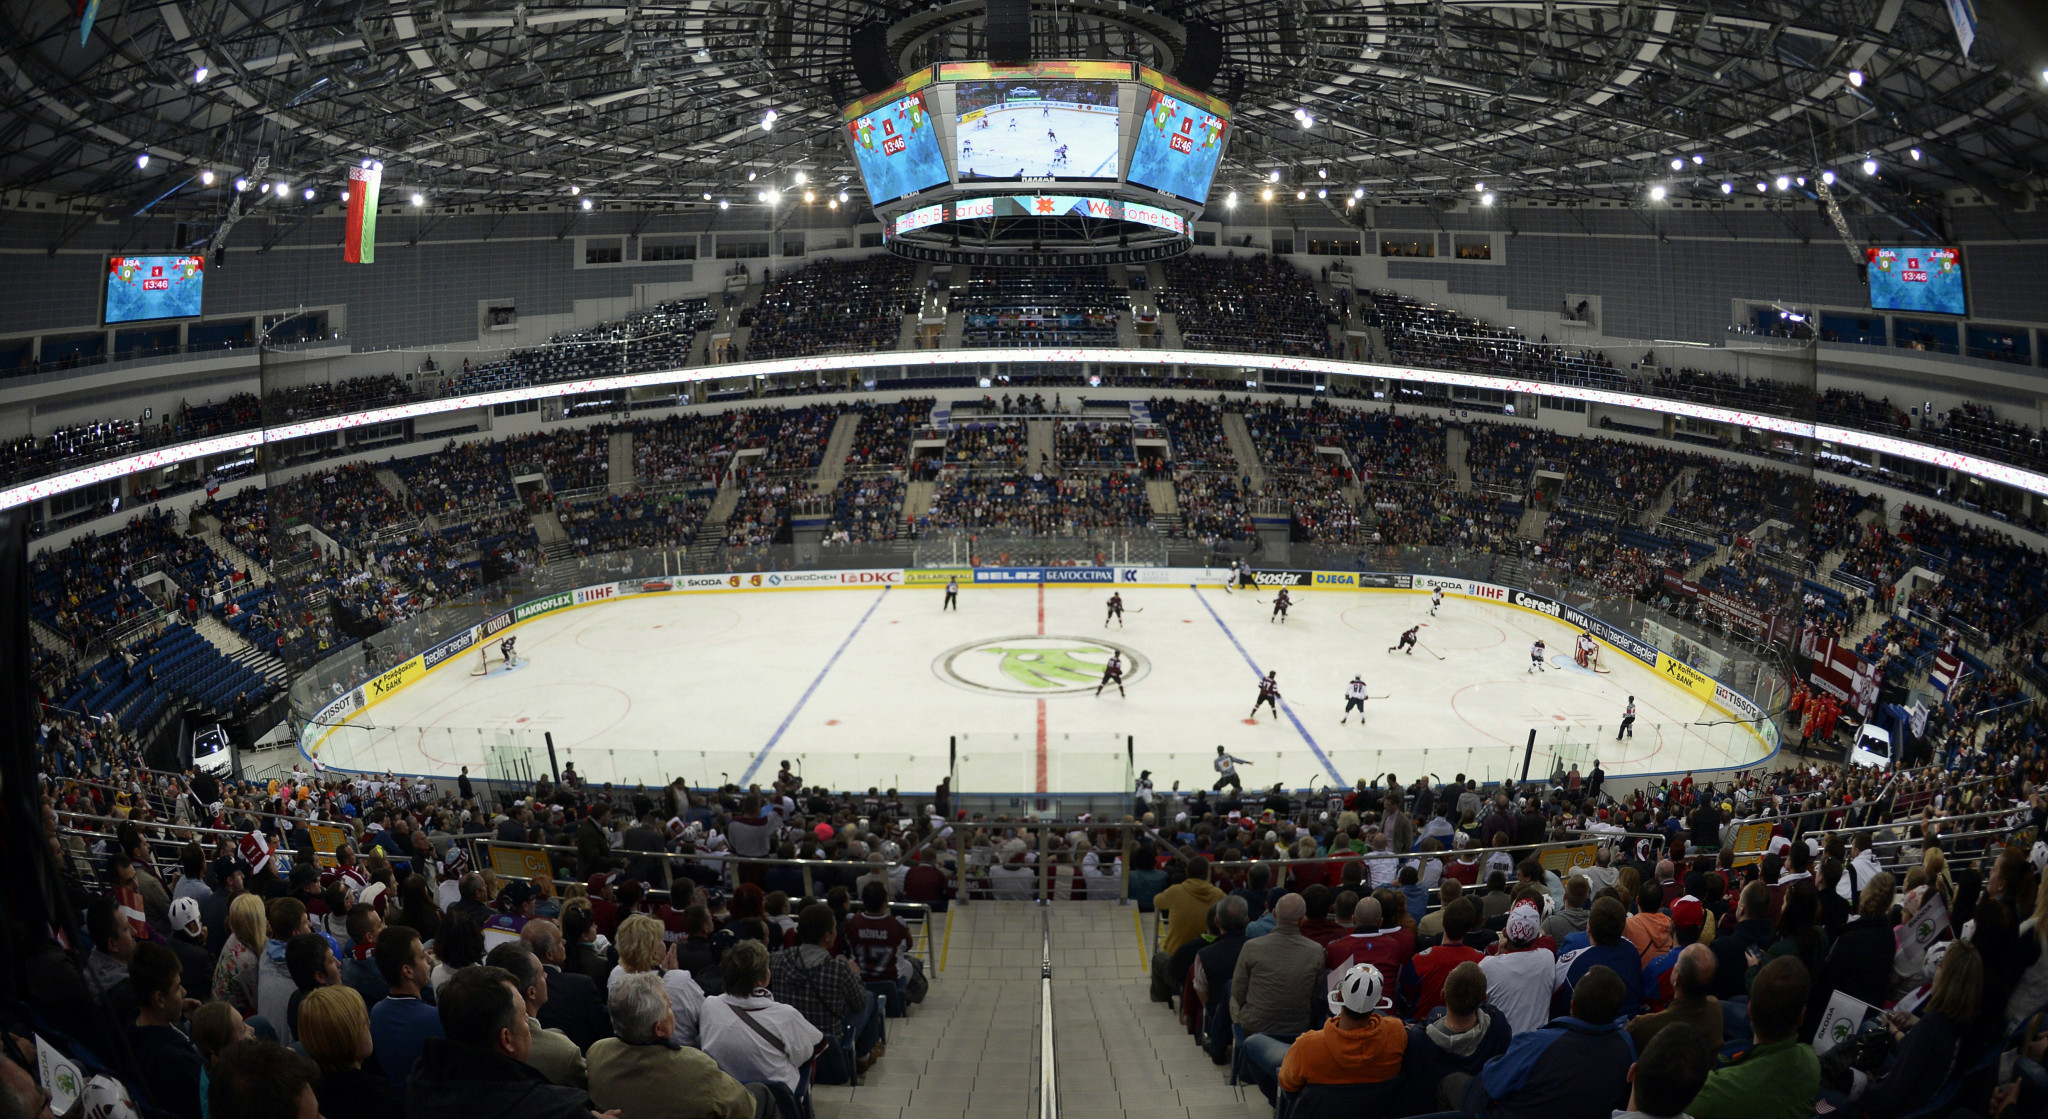 The Minsk Arena will be the main venue for the competition ©Getty Images